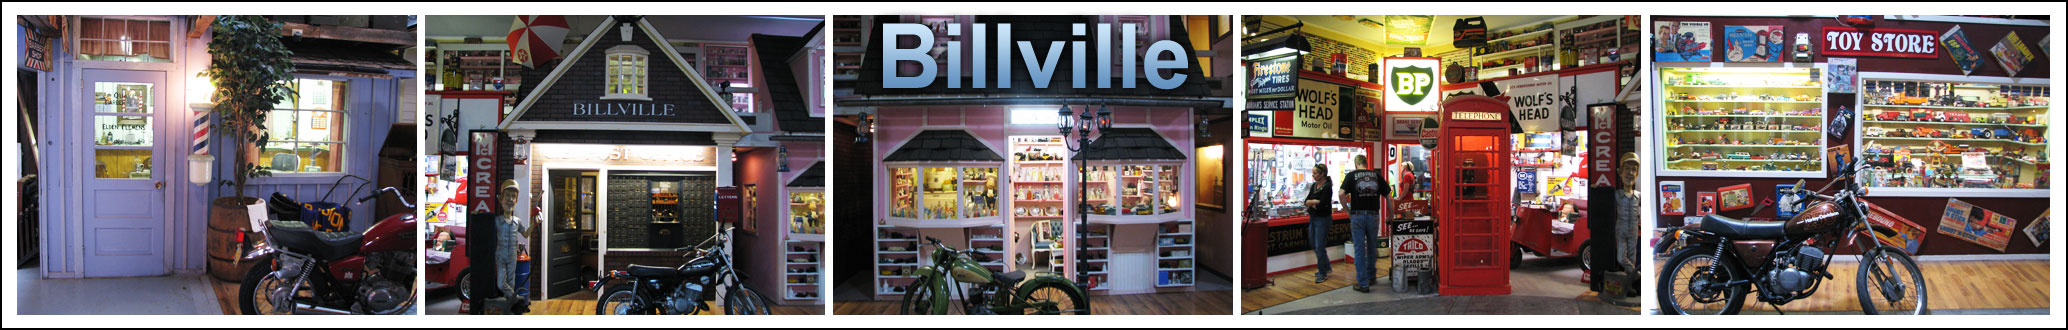 Pictures of Billville